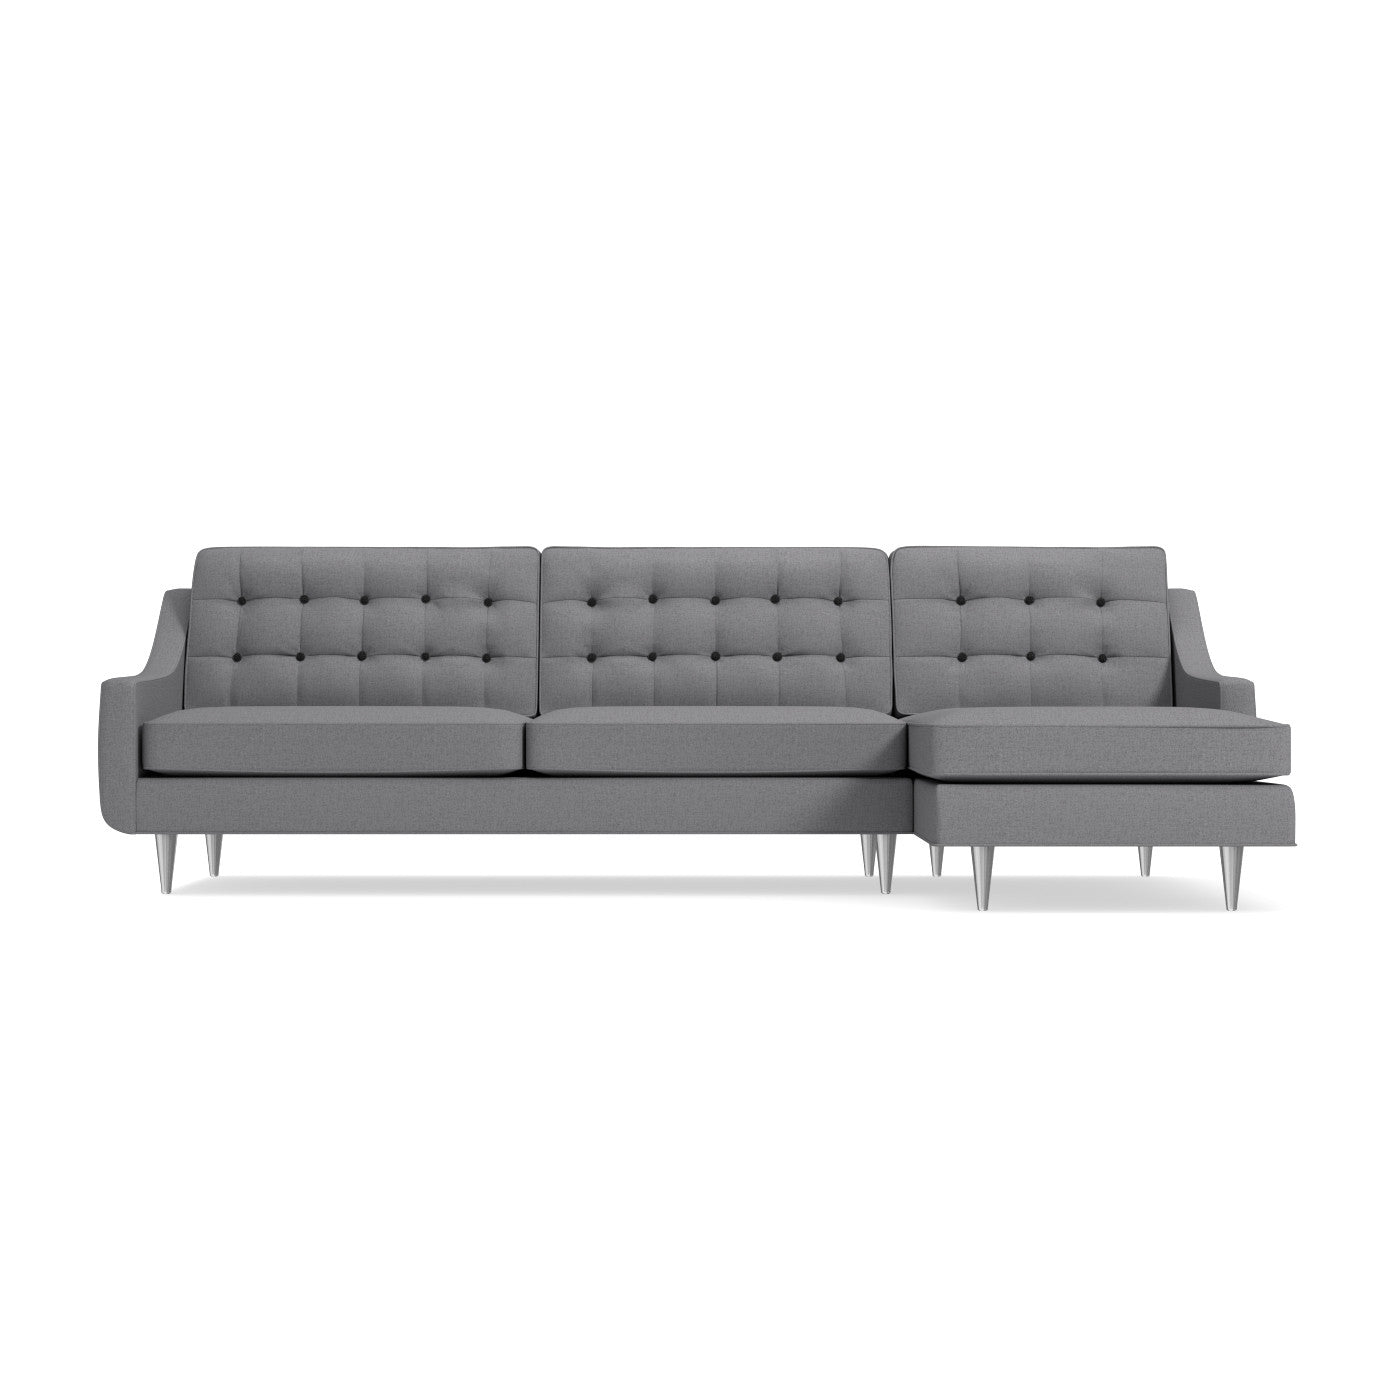 Cloverdale 2pc Sectional CHOOSE YOUR COLOR COMBO